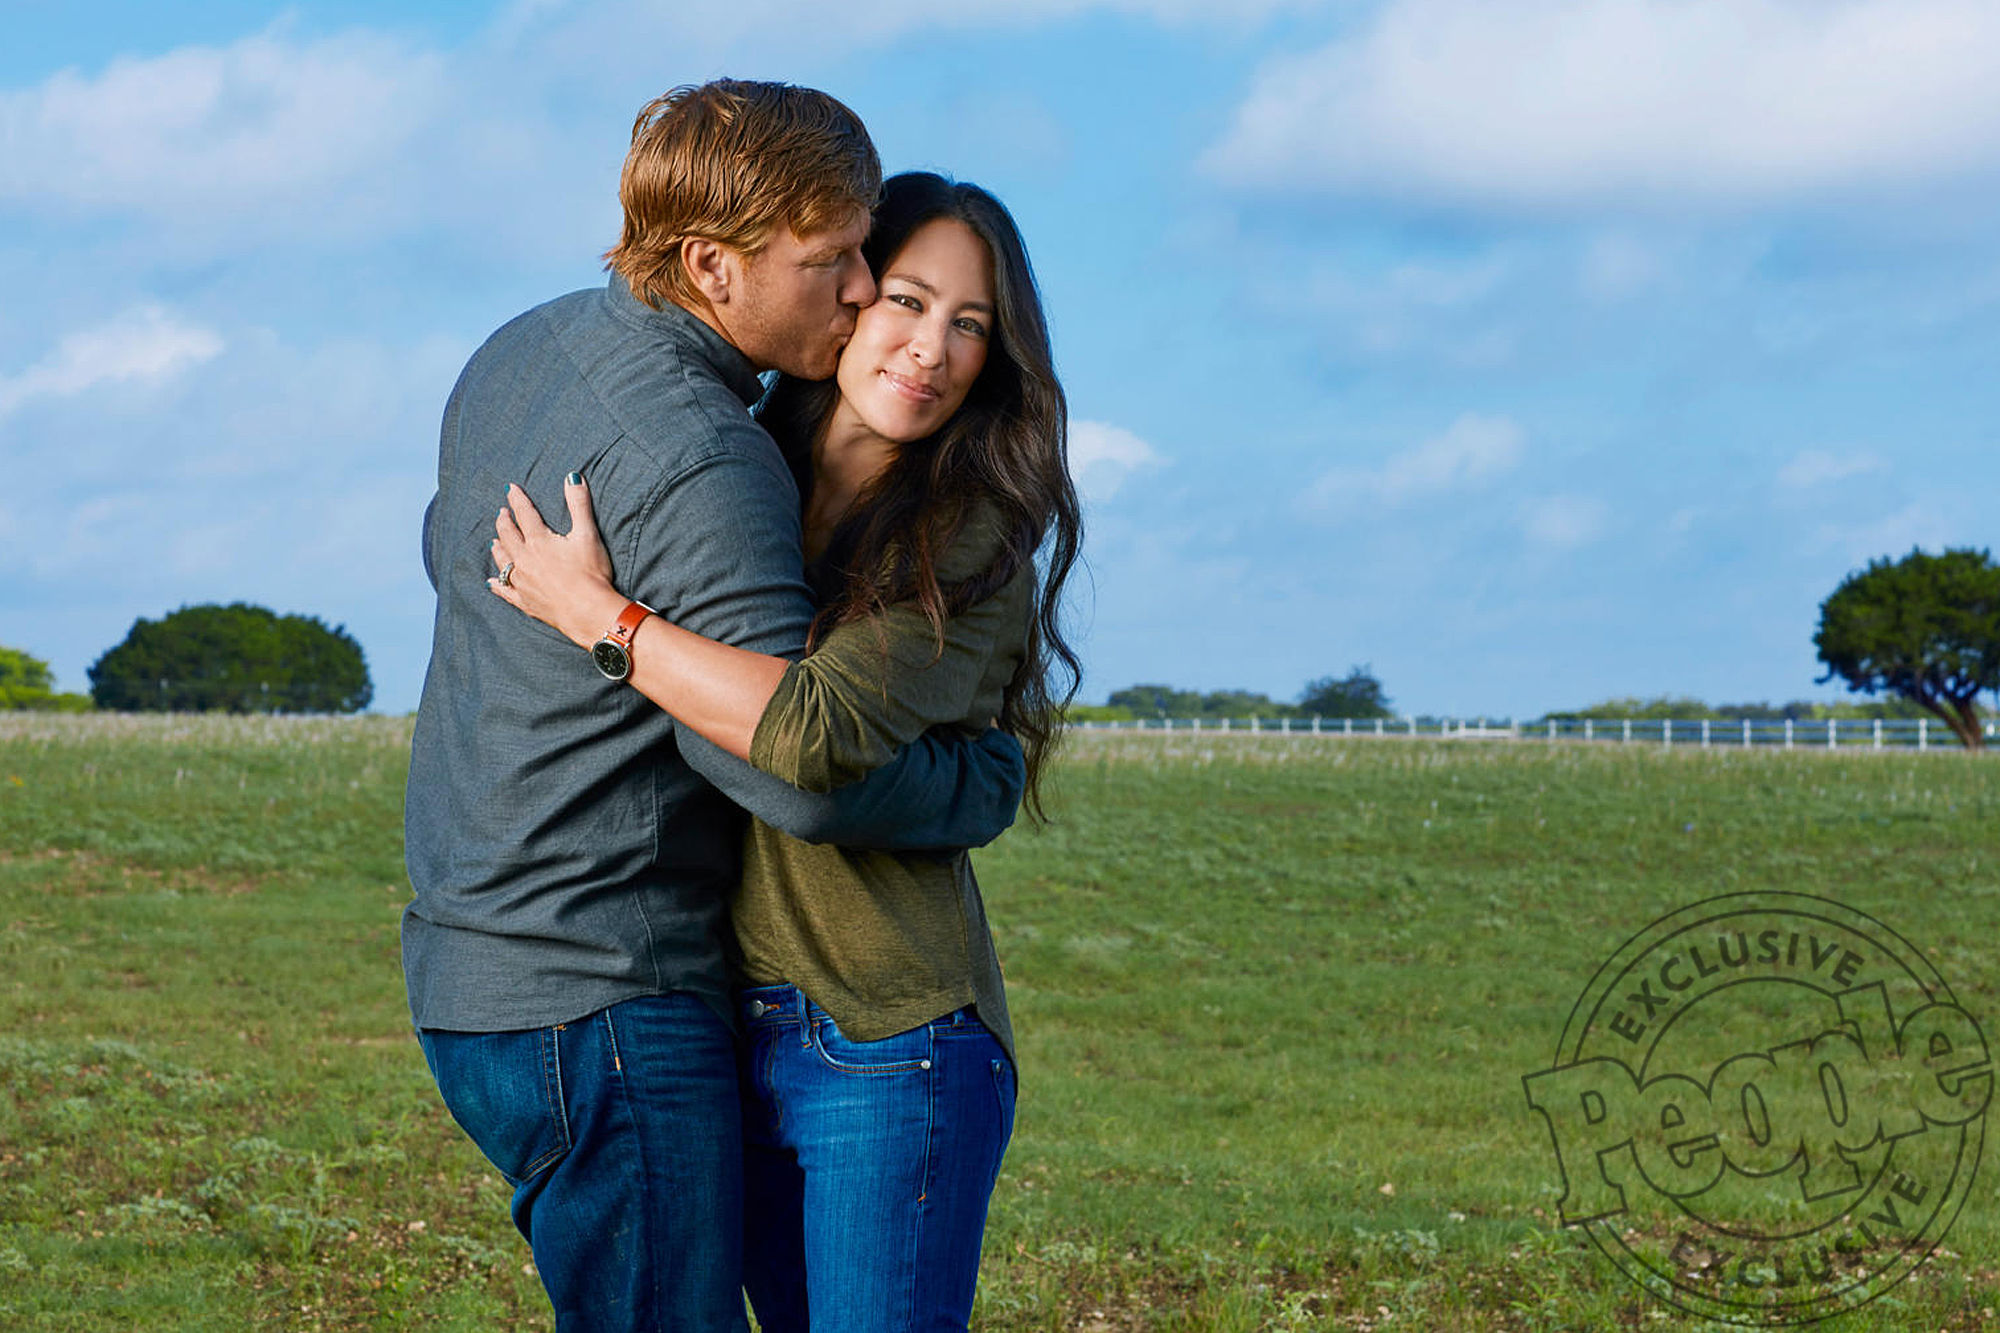 Chip Gaines Says 'My Heart Is Full' as He Shares New Aww-Worthy Photo of 3-Week-Old Son Crew